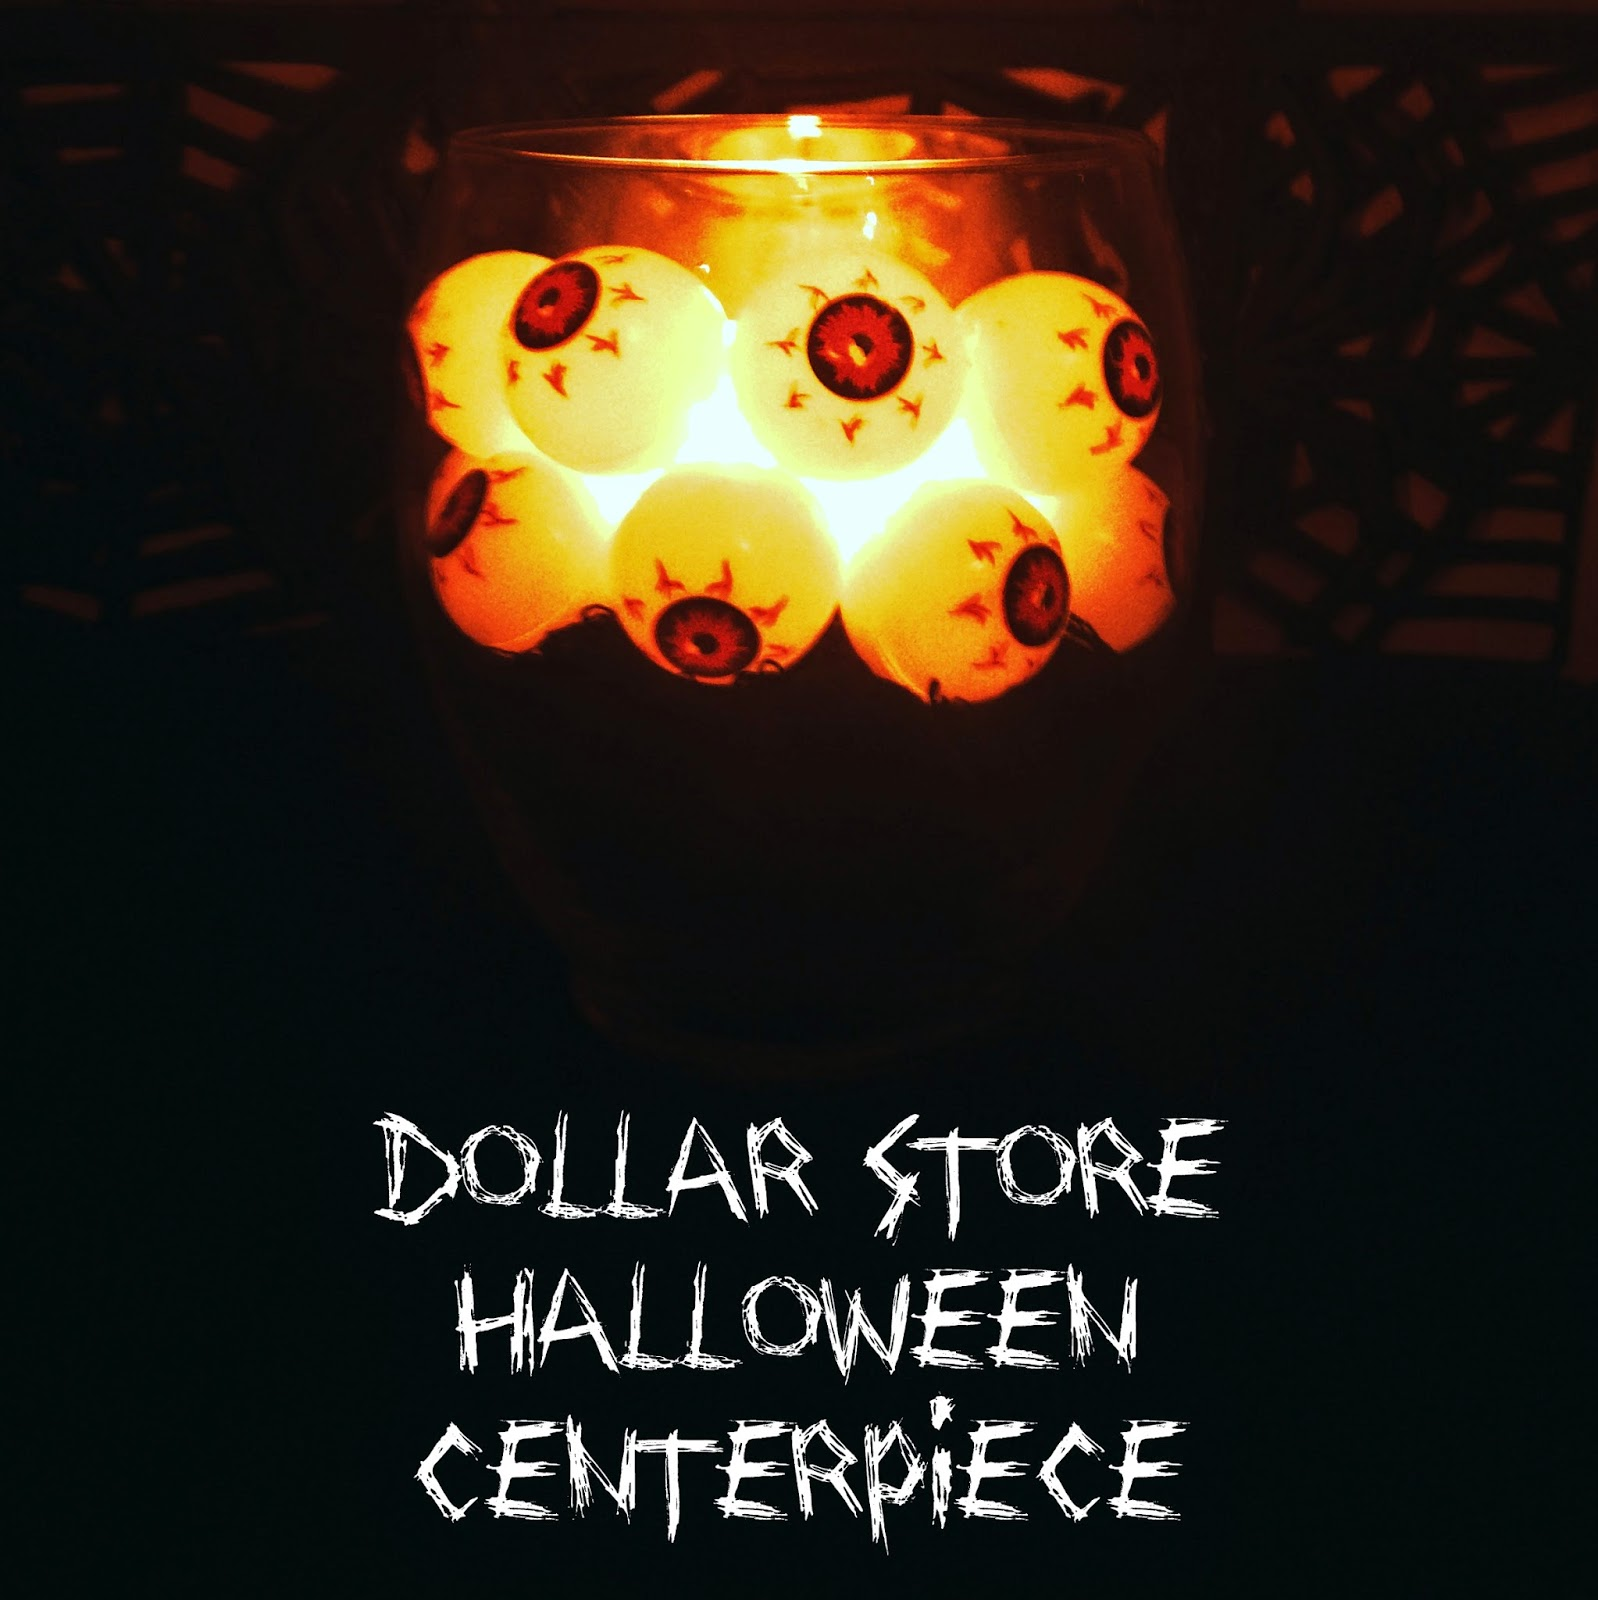 Dollar Store Halloween Centerpiece